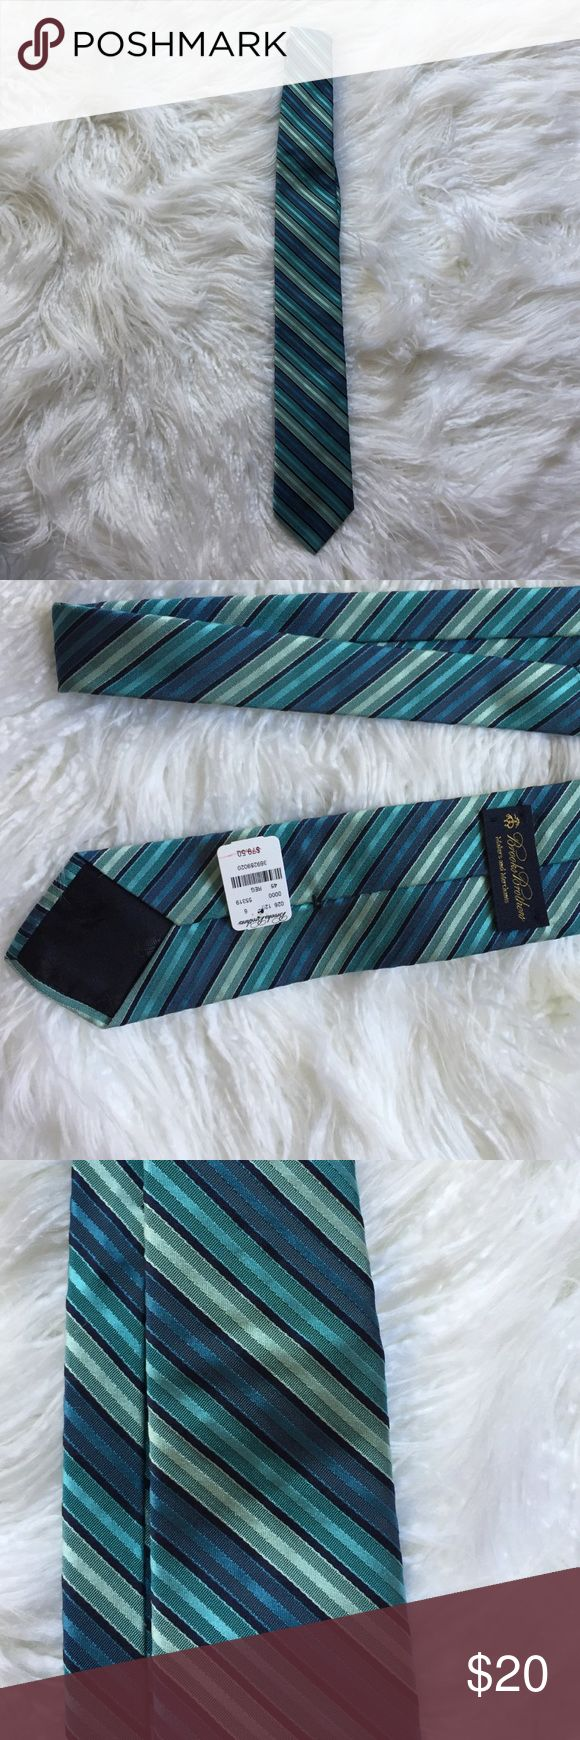 NWT Brooks Brothers bankers stripe tie Beautiful NWT brooks Brothers tie with multi blue bankers stripes Brooks Brothers Accessories Ties